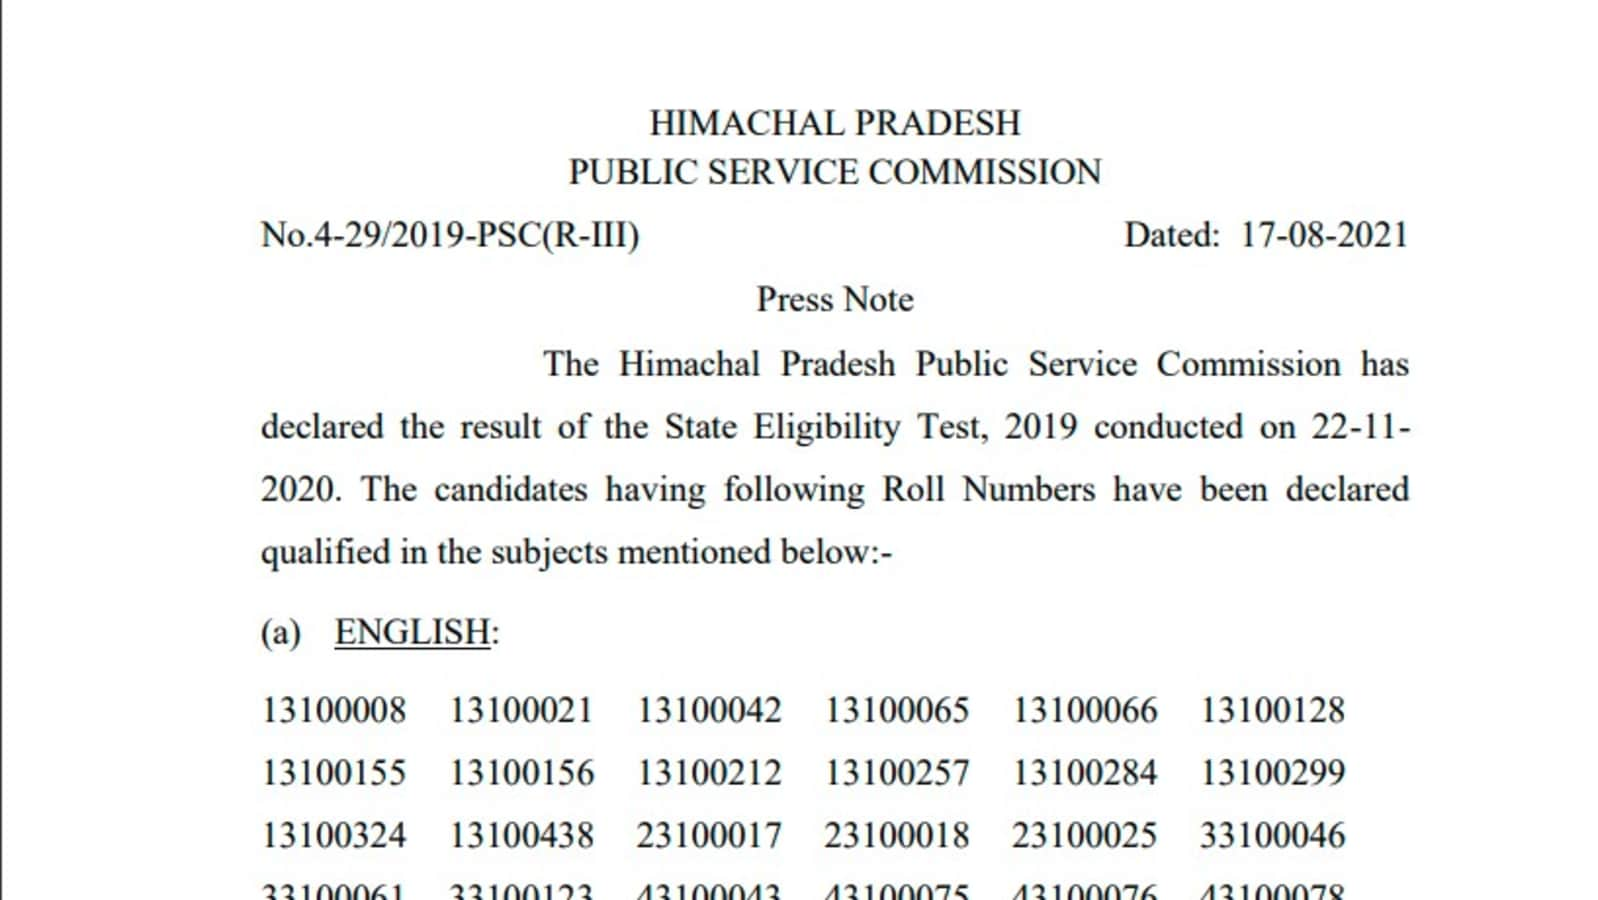 HPPSC SET 2019 results declared, here's list of qualified candidates